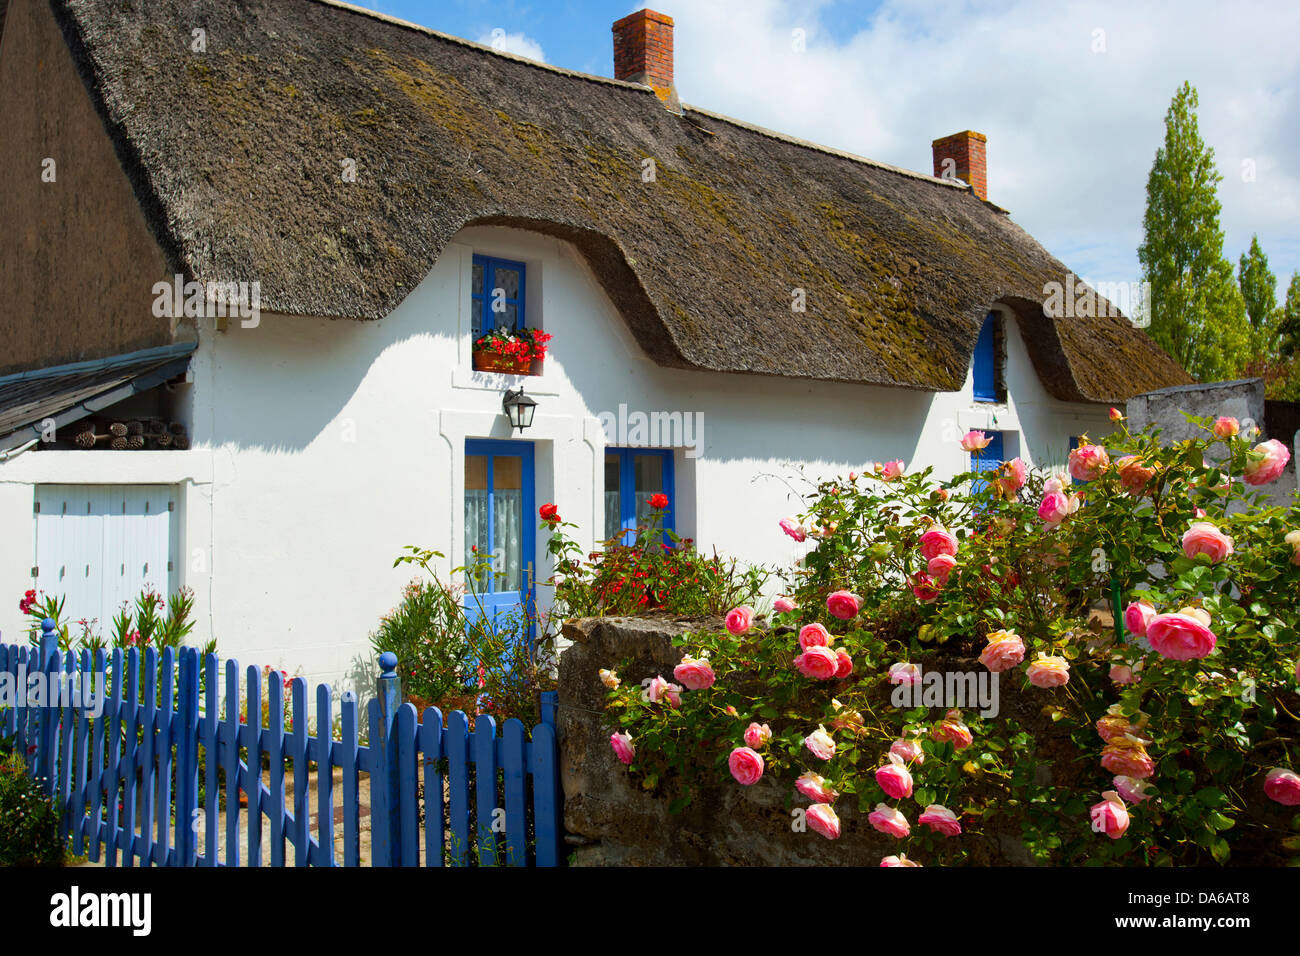 Saint Joachim, France, Europe, Brittany, department Loire-Atlantique, house, home, garden, roses, straw roof Stock Photo